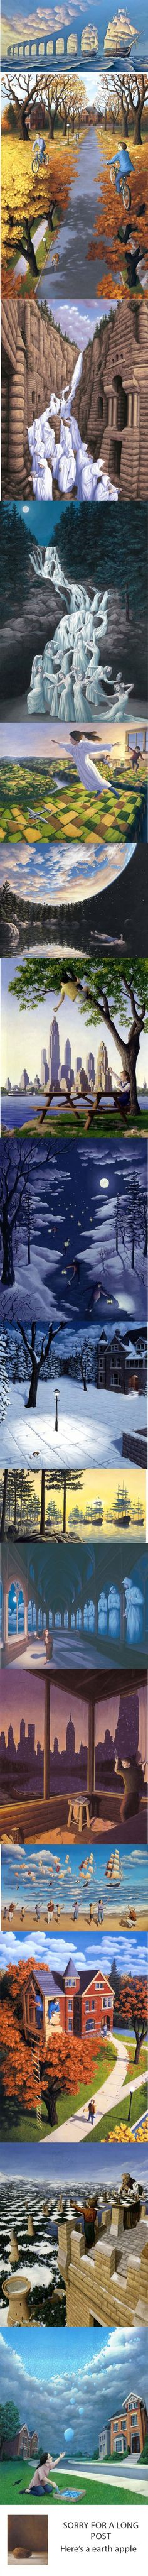 Some of Canadian artist's Rob Gonsalves artwork. When you see it... - www.facebook.com/groups/humor9